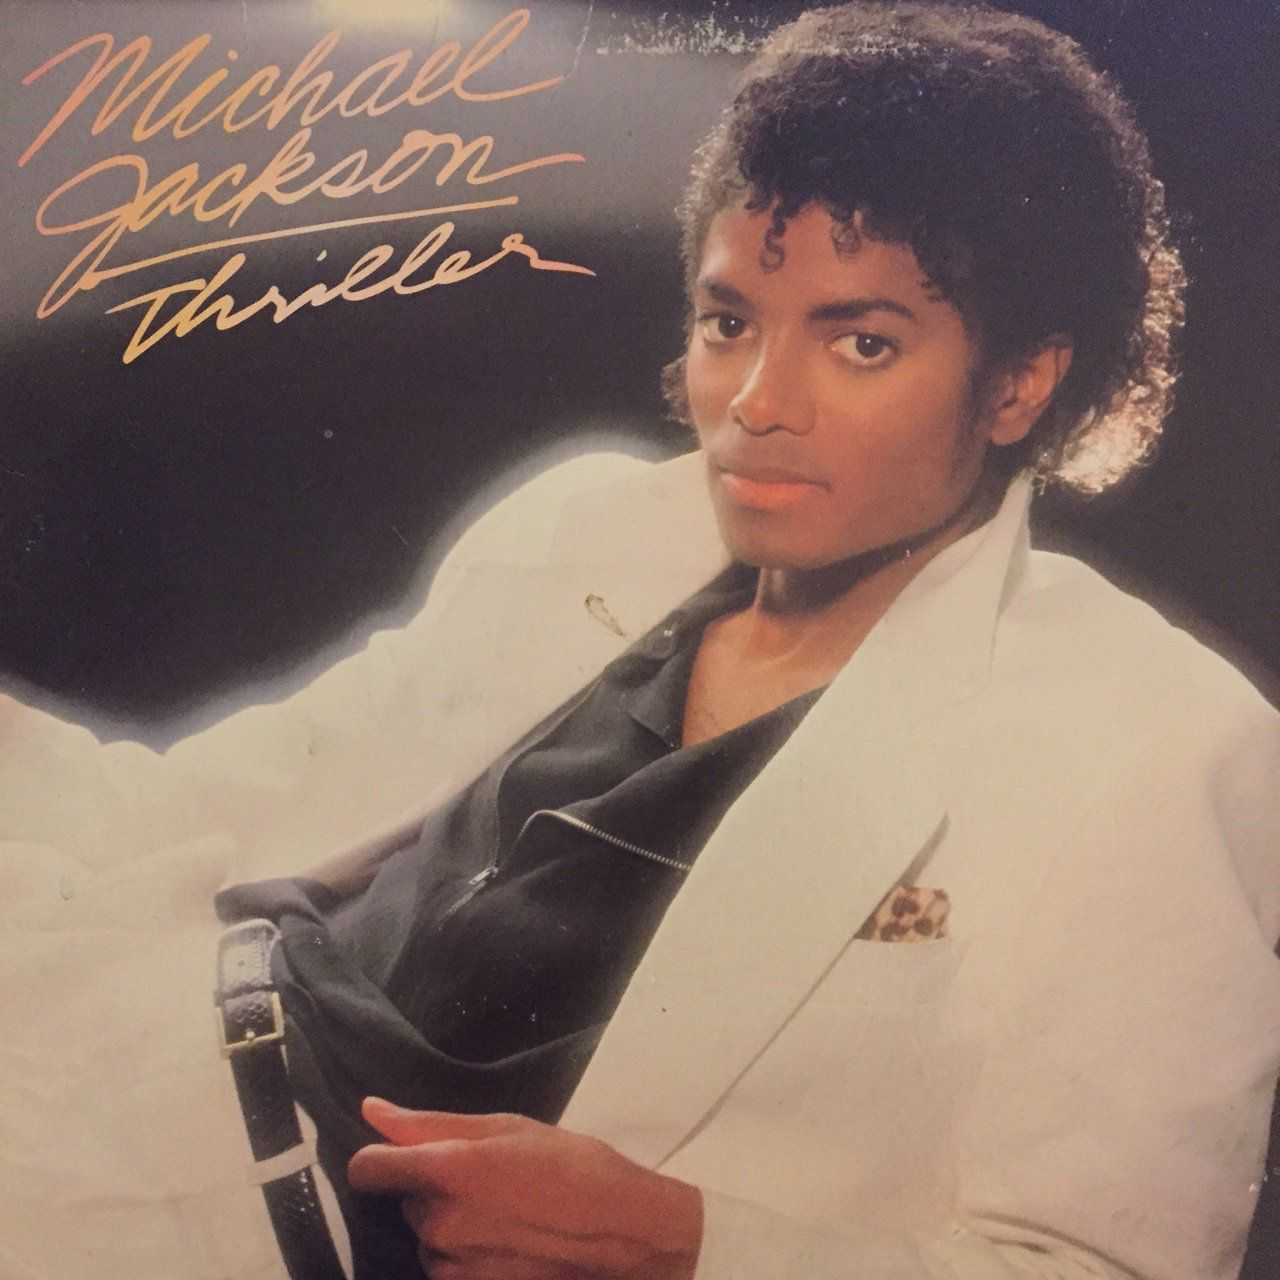 """Michael Jackson's """"Thriller"""" record cover."""